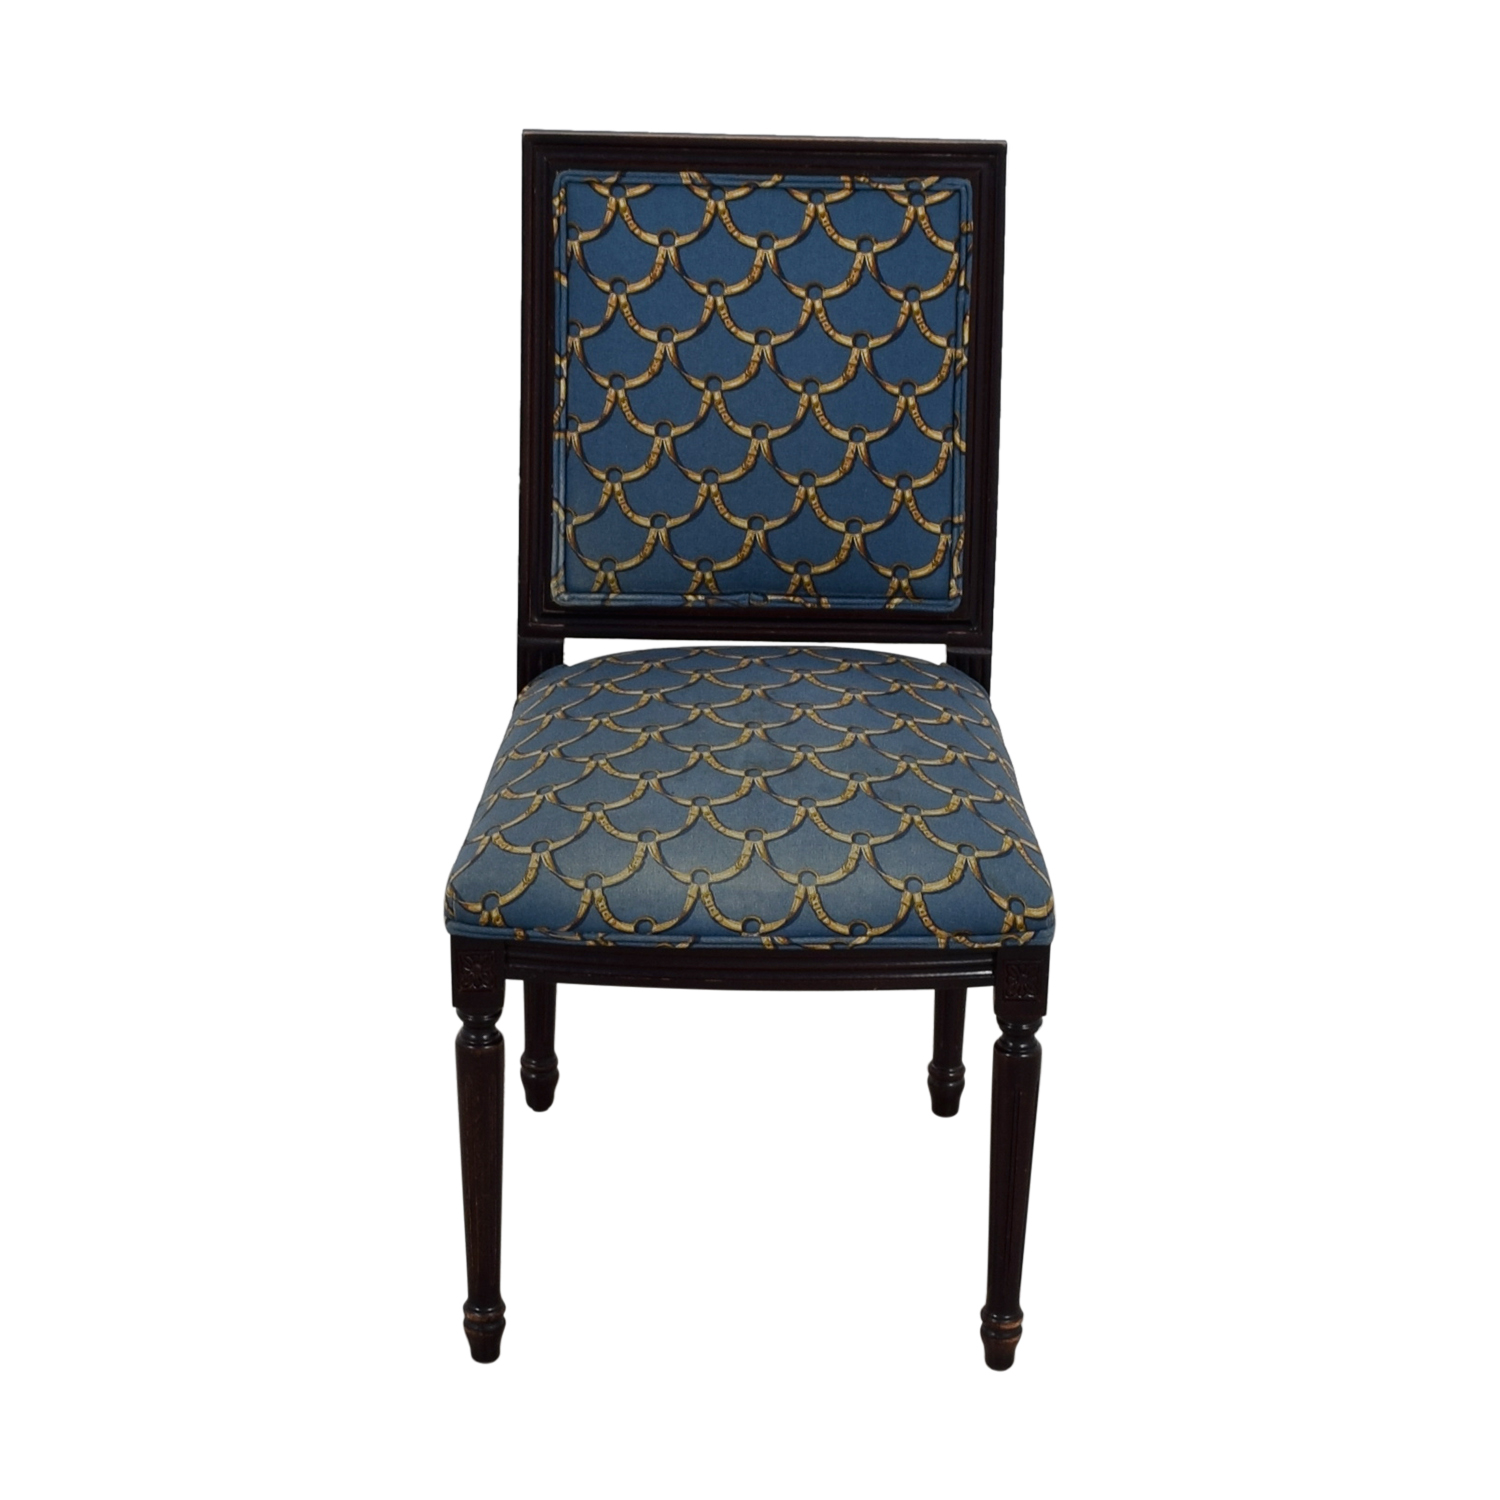 ballard designs upholstered dining chairs lego table with storage and 88 off blue gold